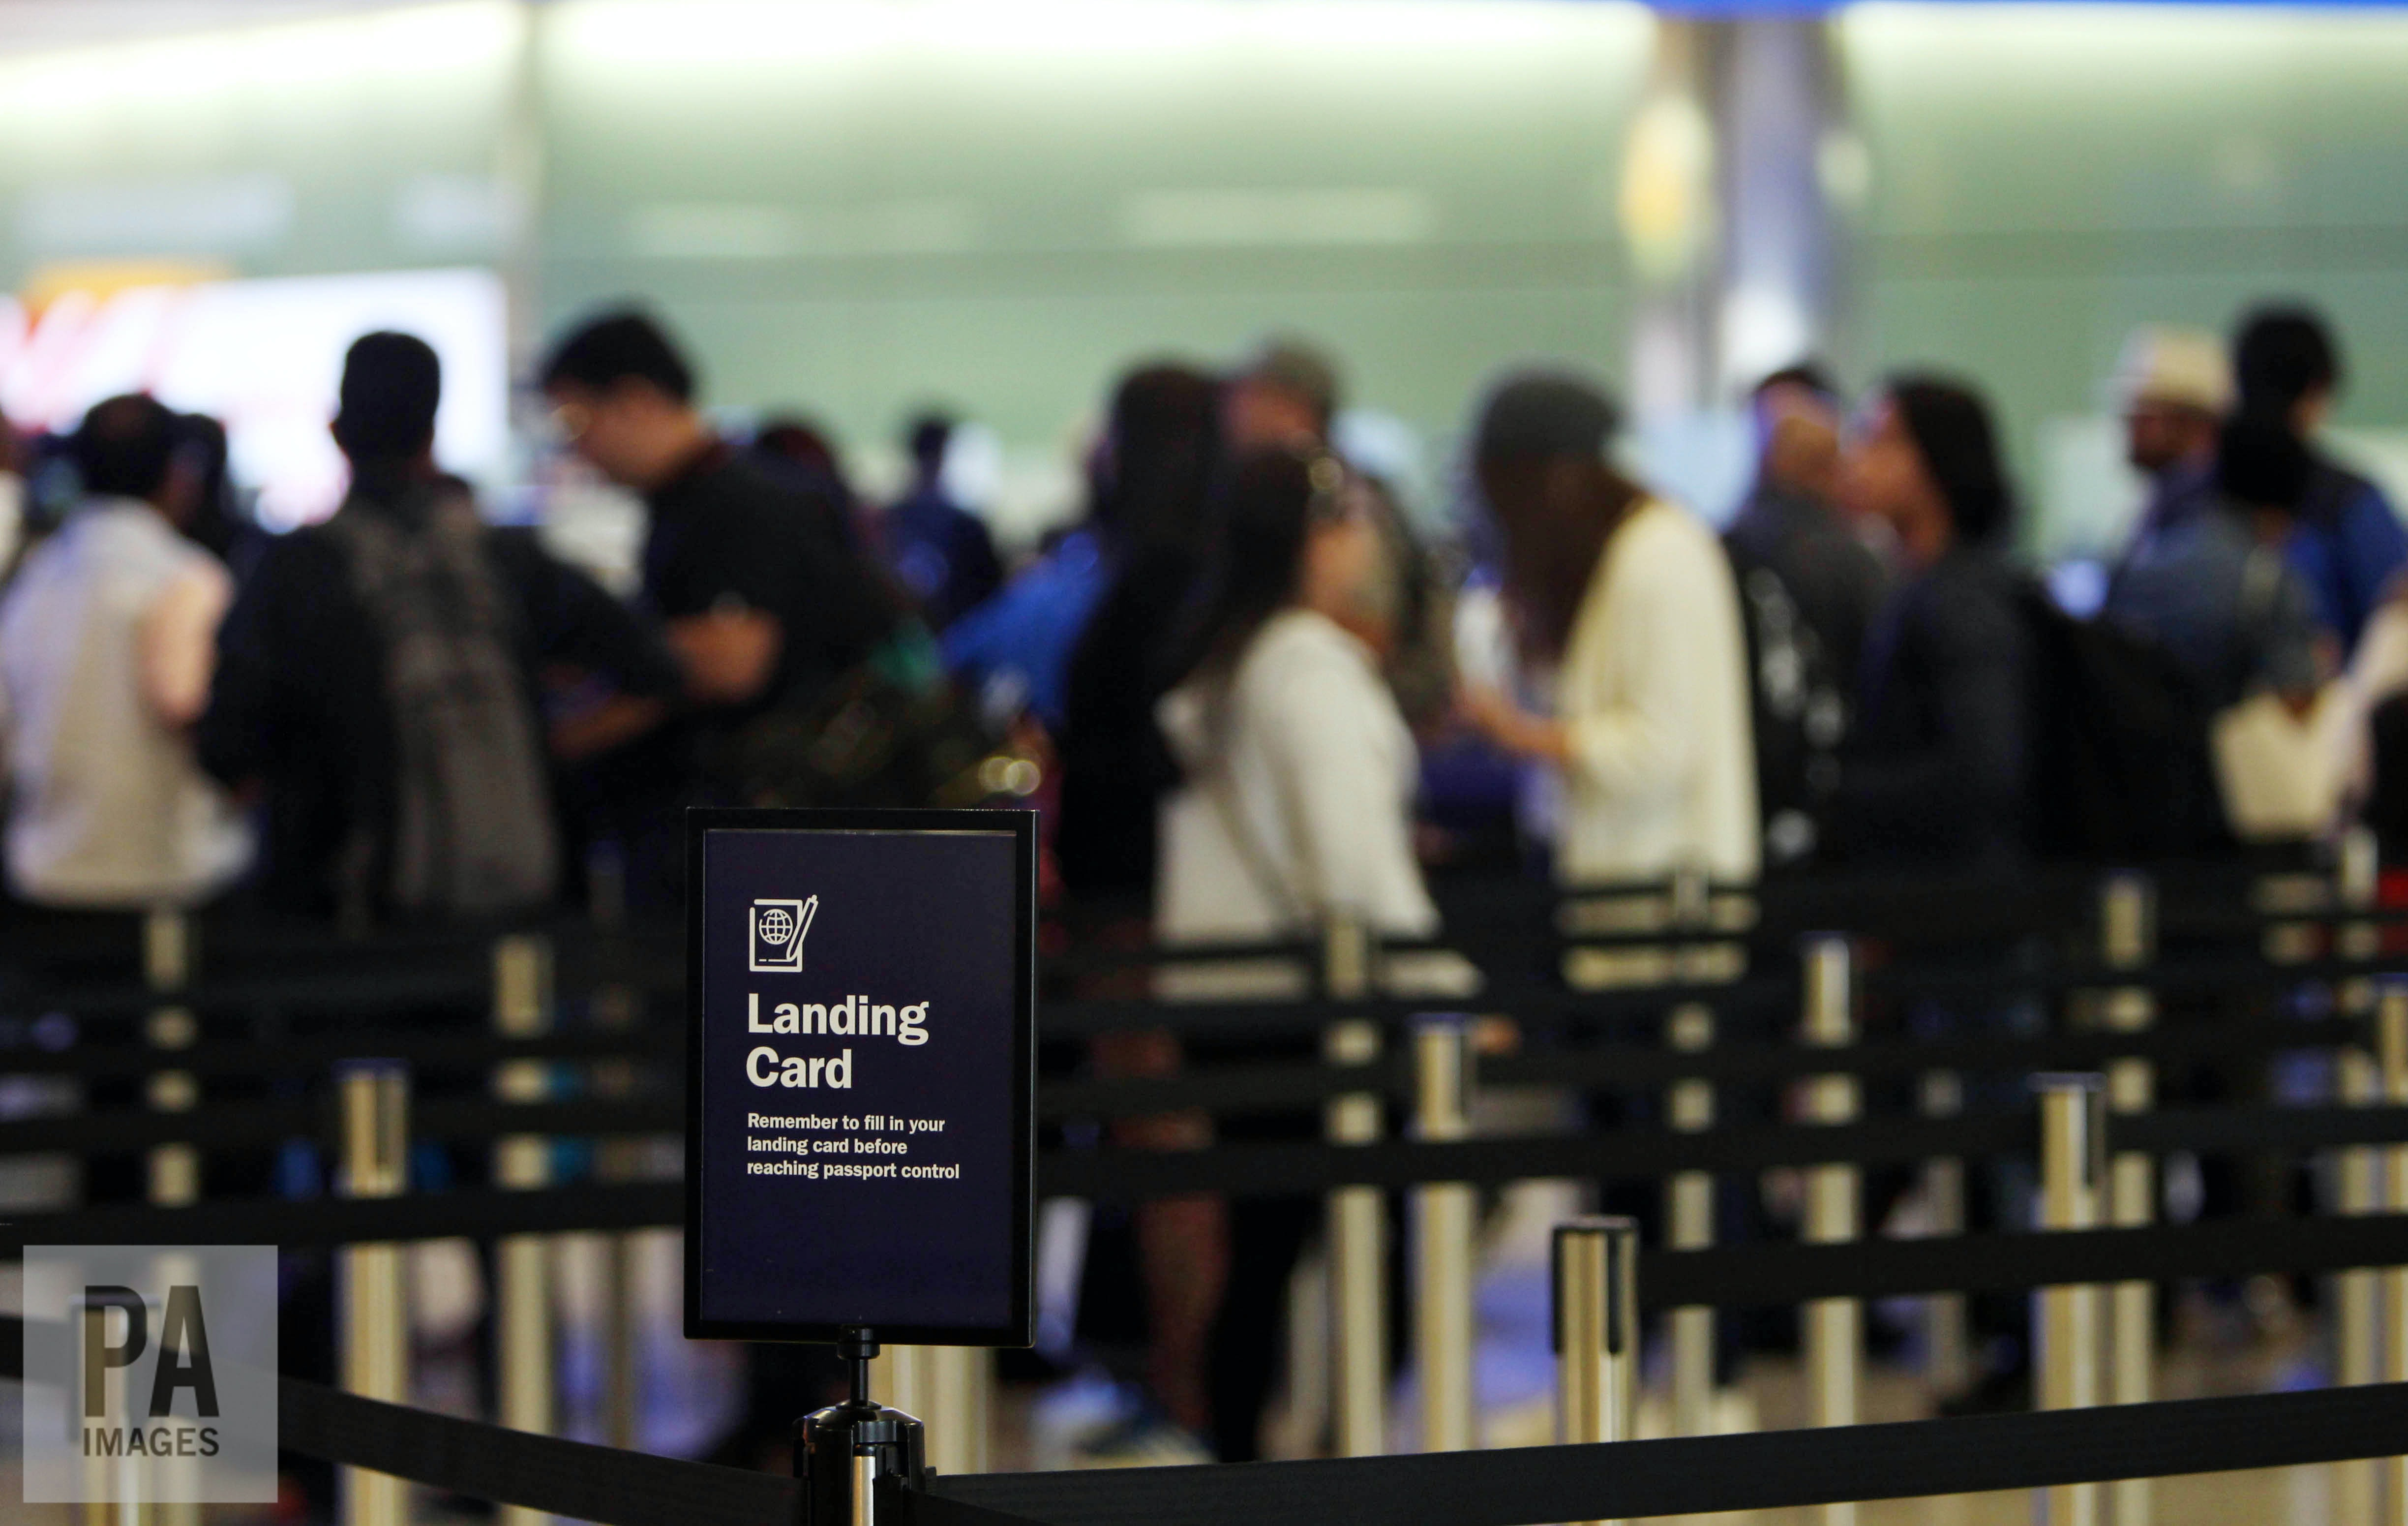 Beware The Border Patrol The Nasty History Of Airport Discrimination